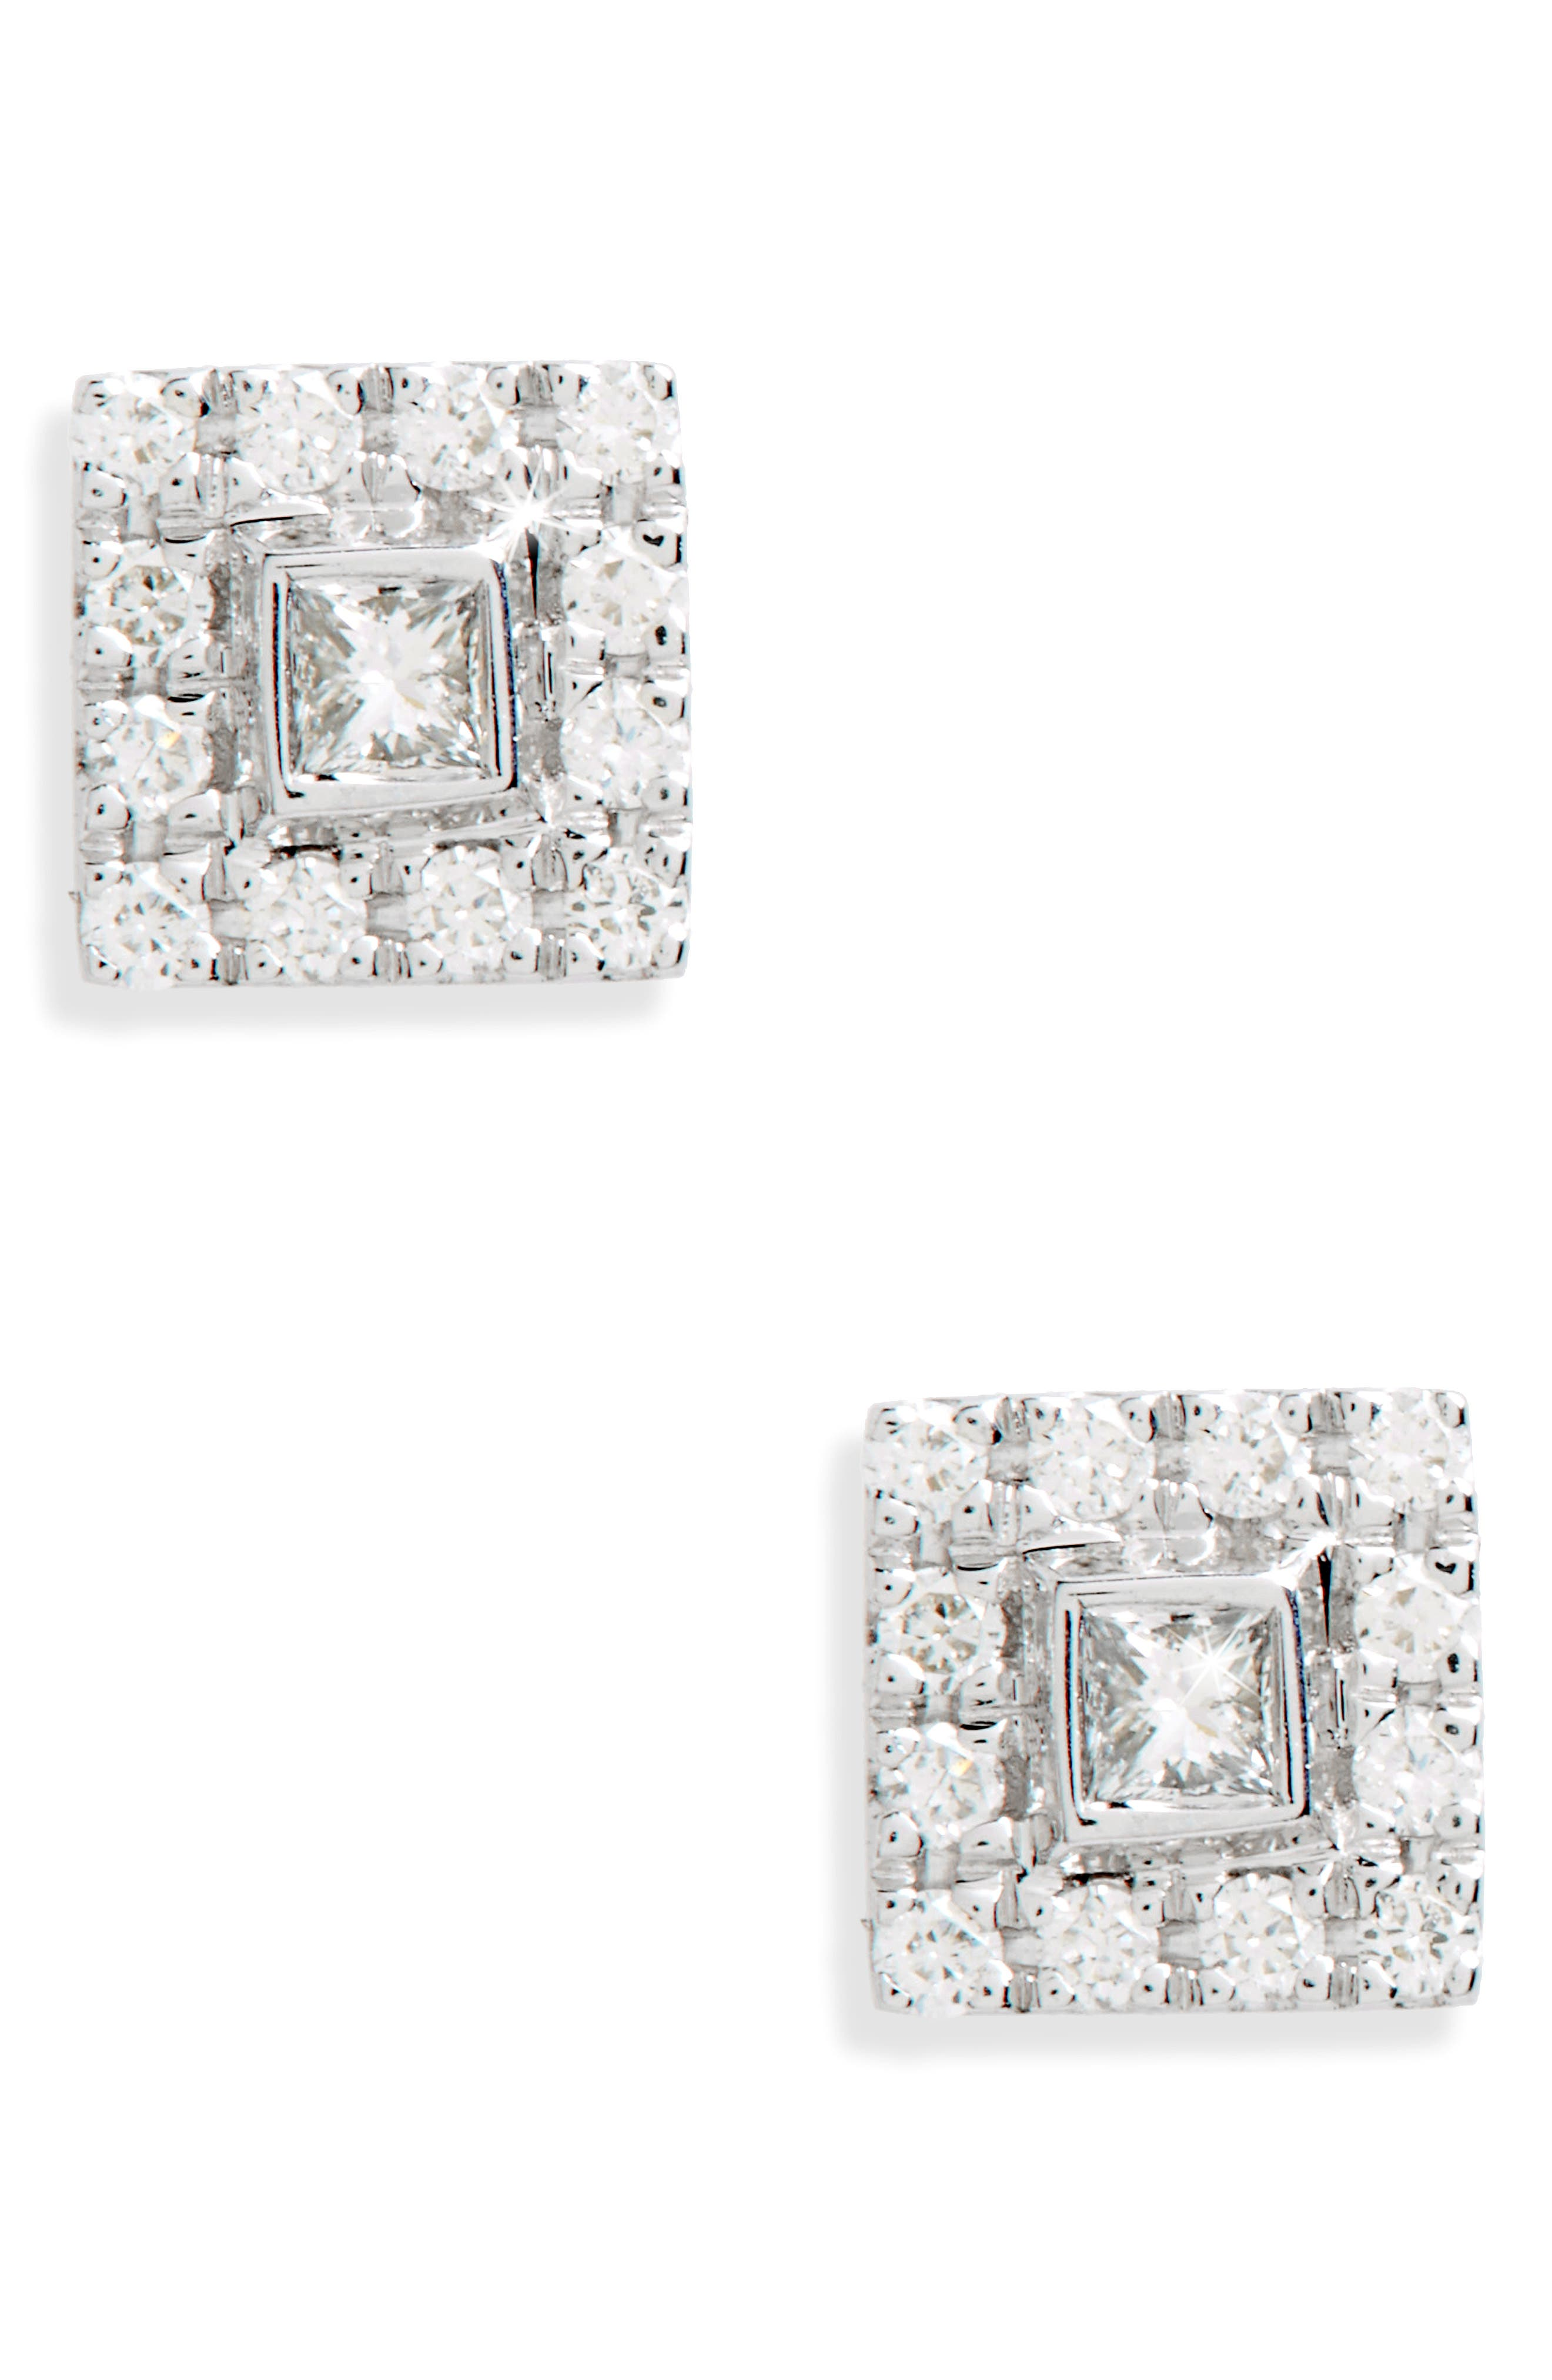 Alternate Image 1 Selected - Bony Levy Amara Small Square Diamond Stud Earrings (Nordstrom Exclusive)